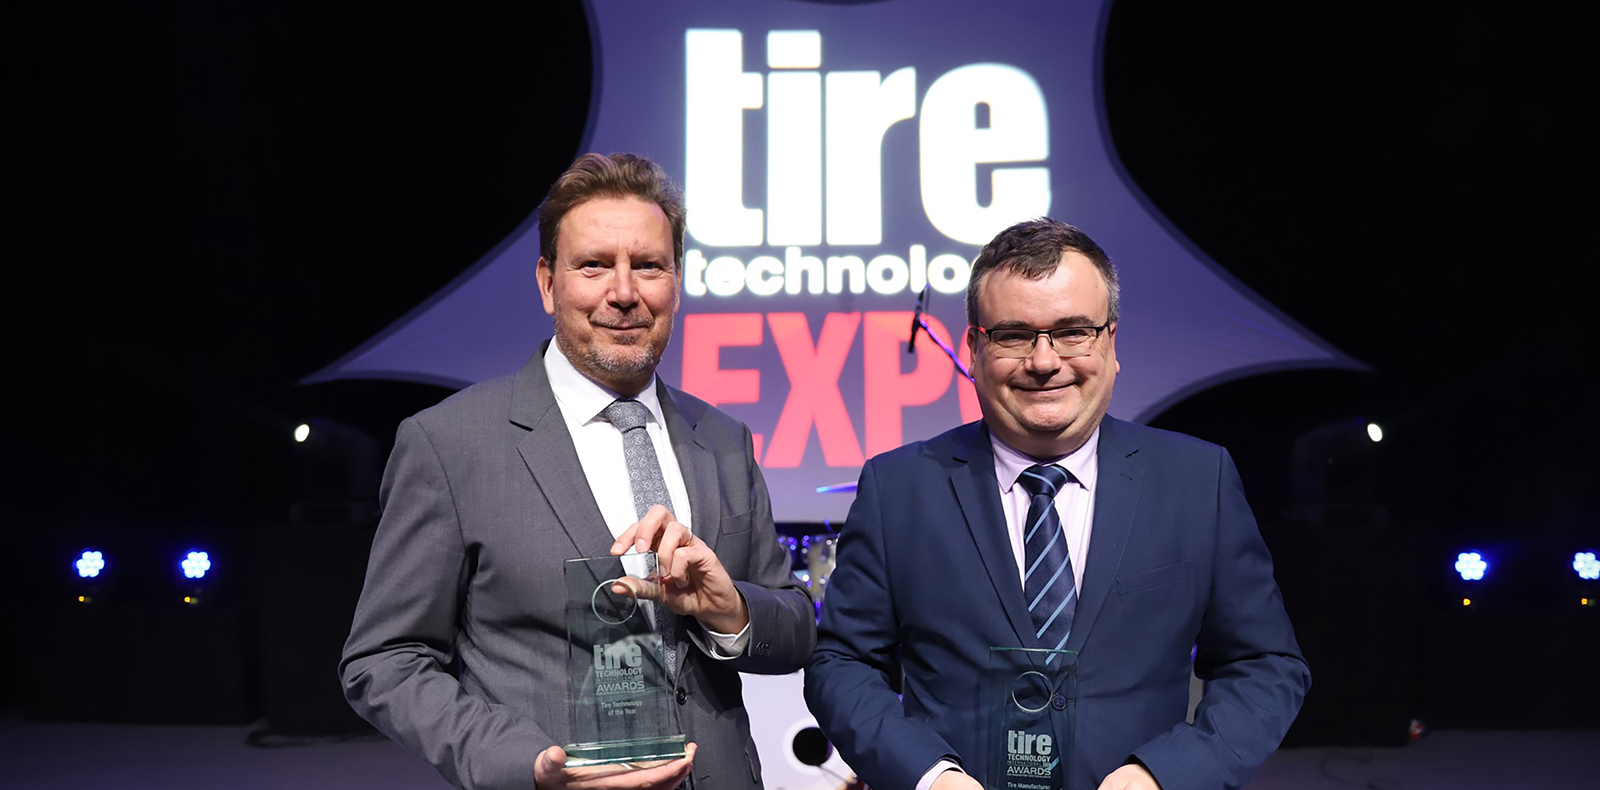 2020 Tire Technology International Awards for Innovation and Excellence: Michelin kicks off the year with a double in Hanover